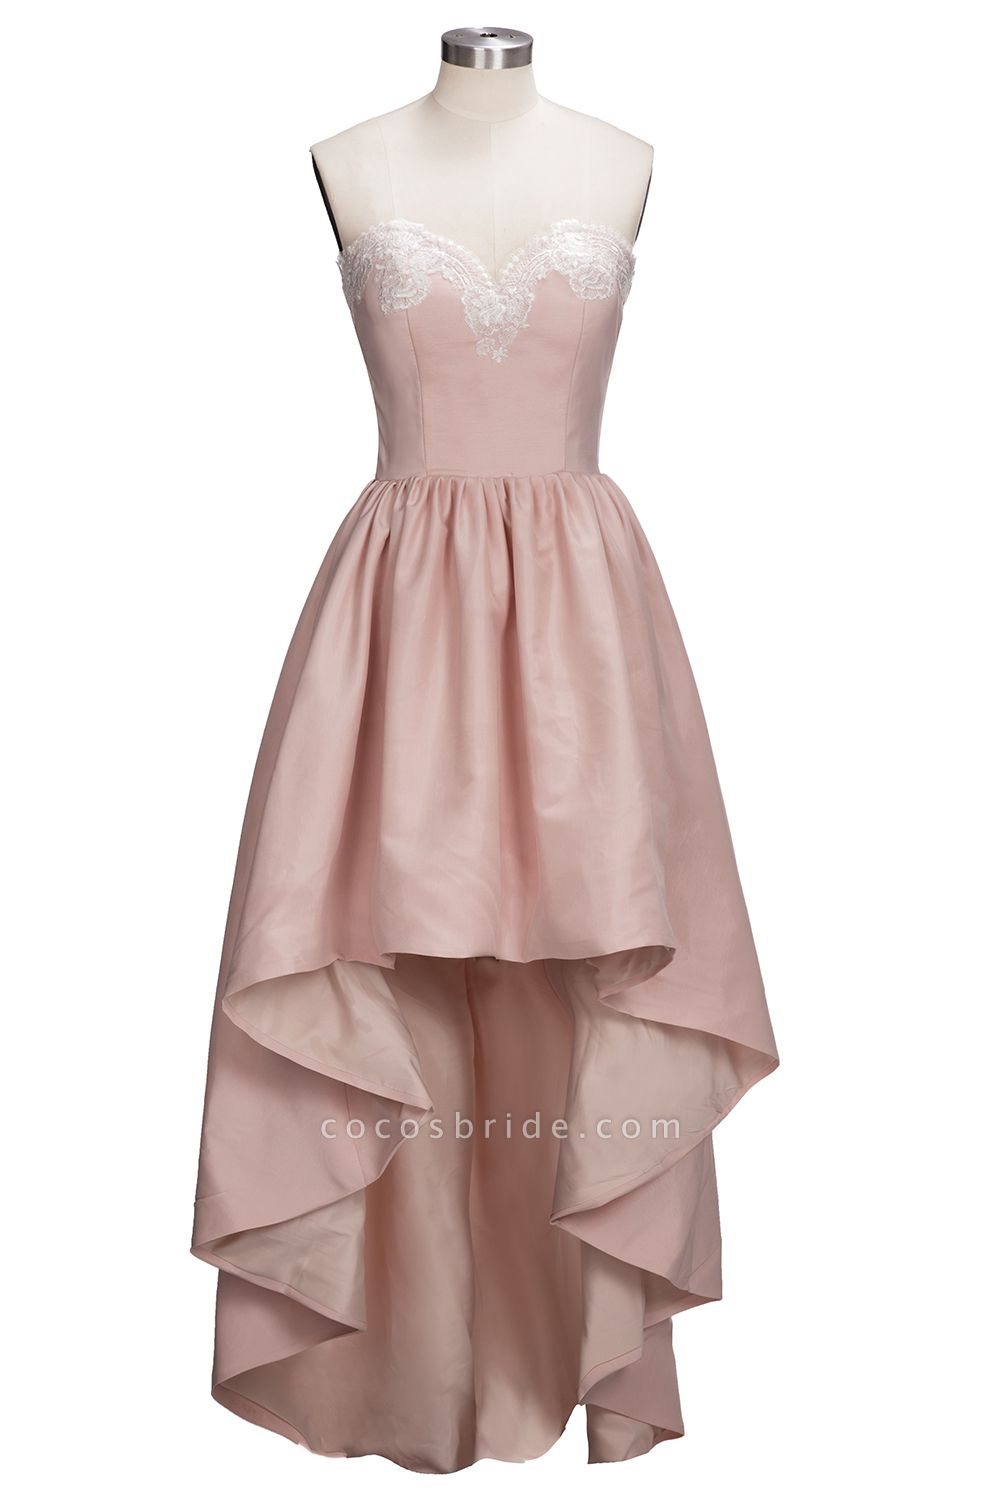 TIFFANY | A-line Strapless Sweetheart High-low Sleeveless Prom Dresses